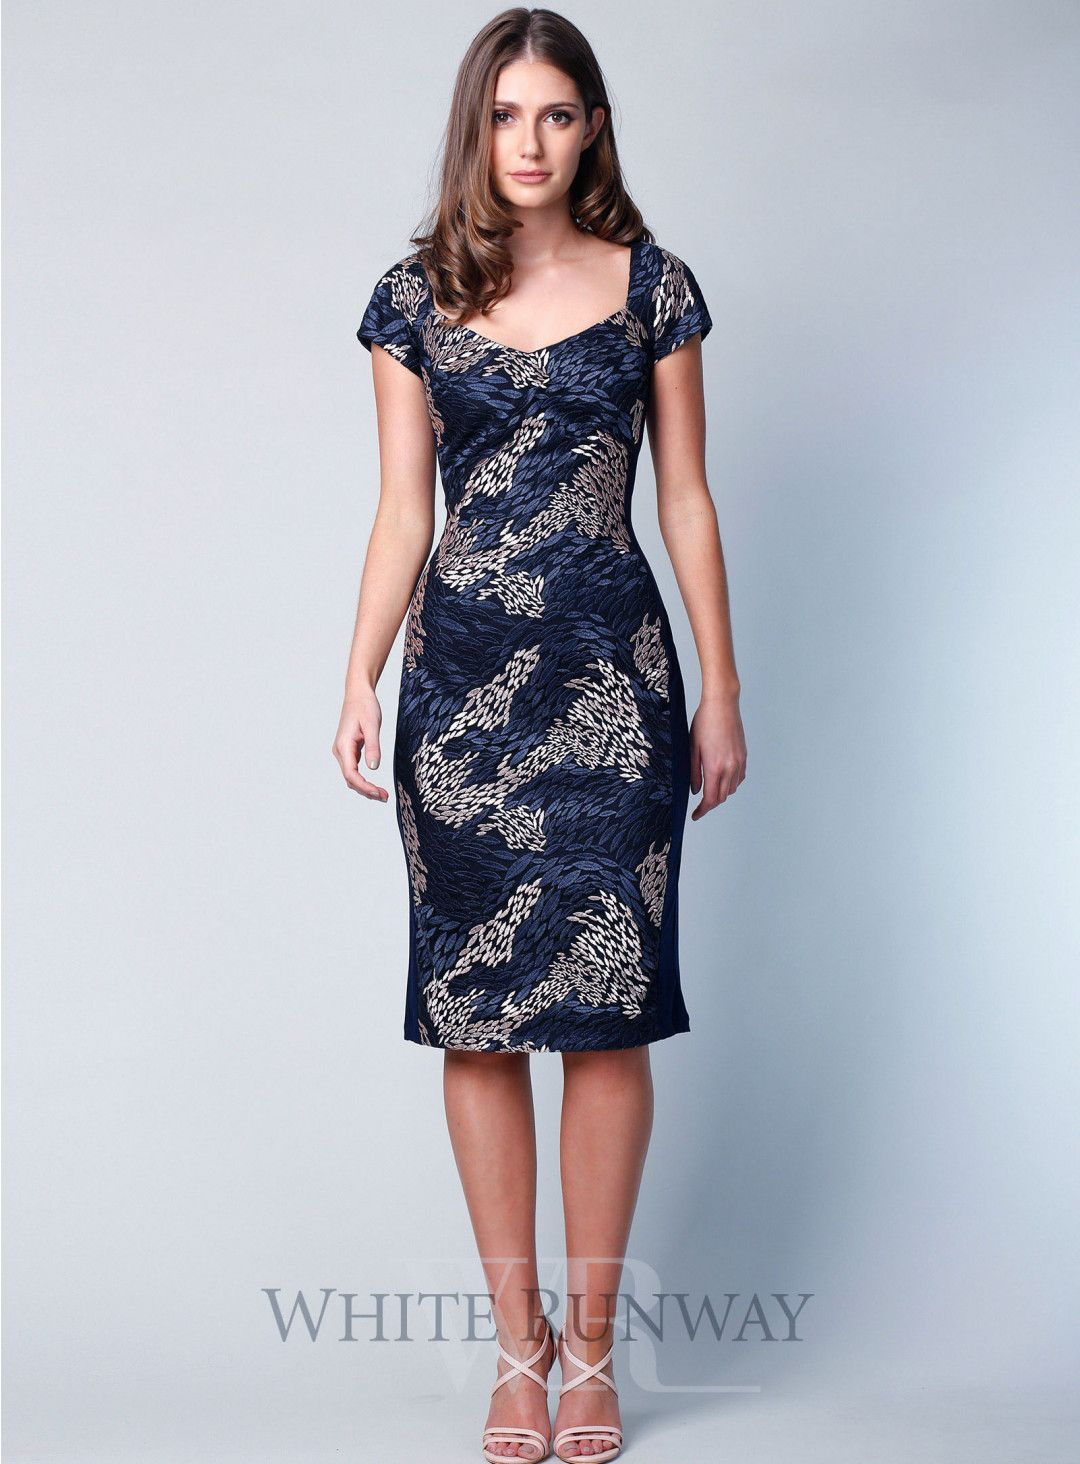 8dc7c1699755 Victoria Dress. A lovely midi length dress by Jesse Harper. A soft  v-neckline style featuring short sleeves and beautiful print design.